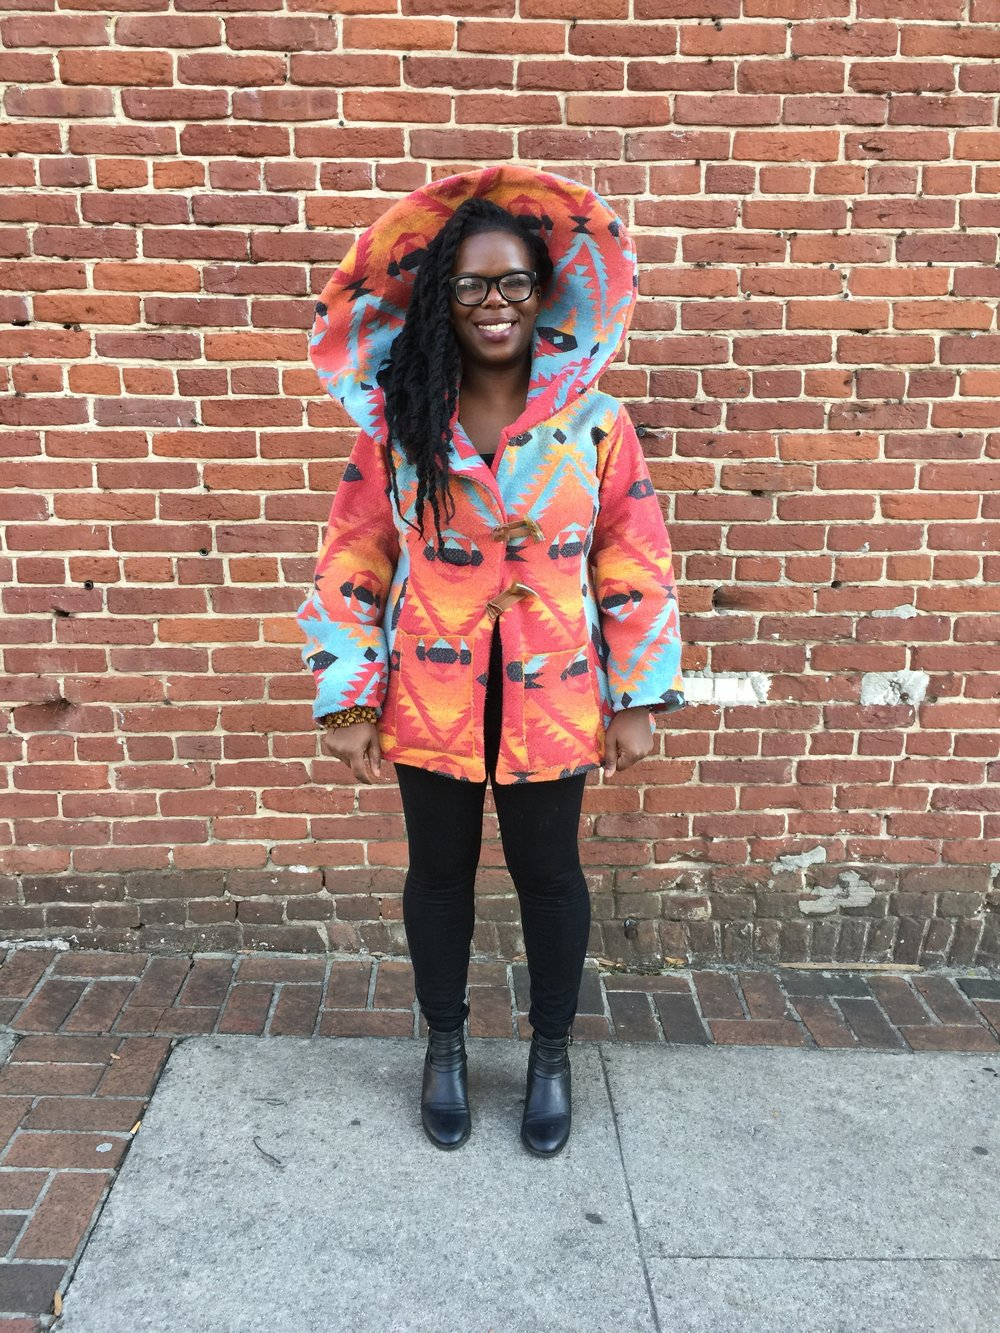 Shanika pichey   Shanika Pichey is a textile artist, blogger (Life is Pichey), DIY enthusiast and self-taught maker. She also owns Sebastian Harper, a clothing and accessories line that creates one-of-a-kind pieces by using natural dyes and upcycled material.